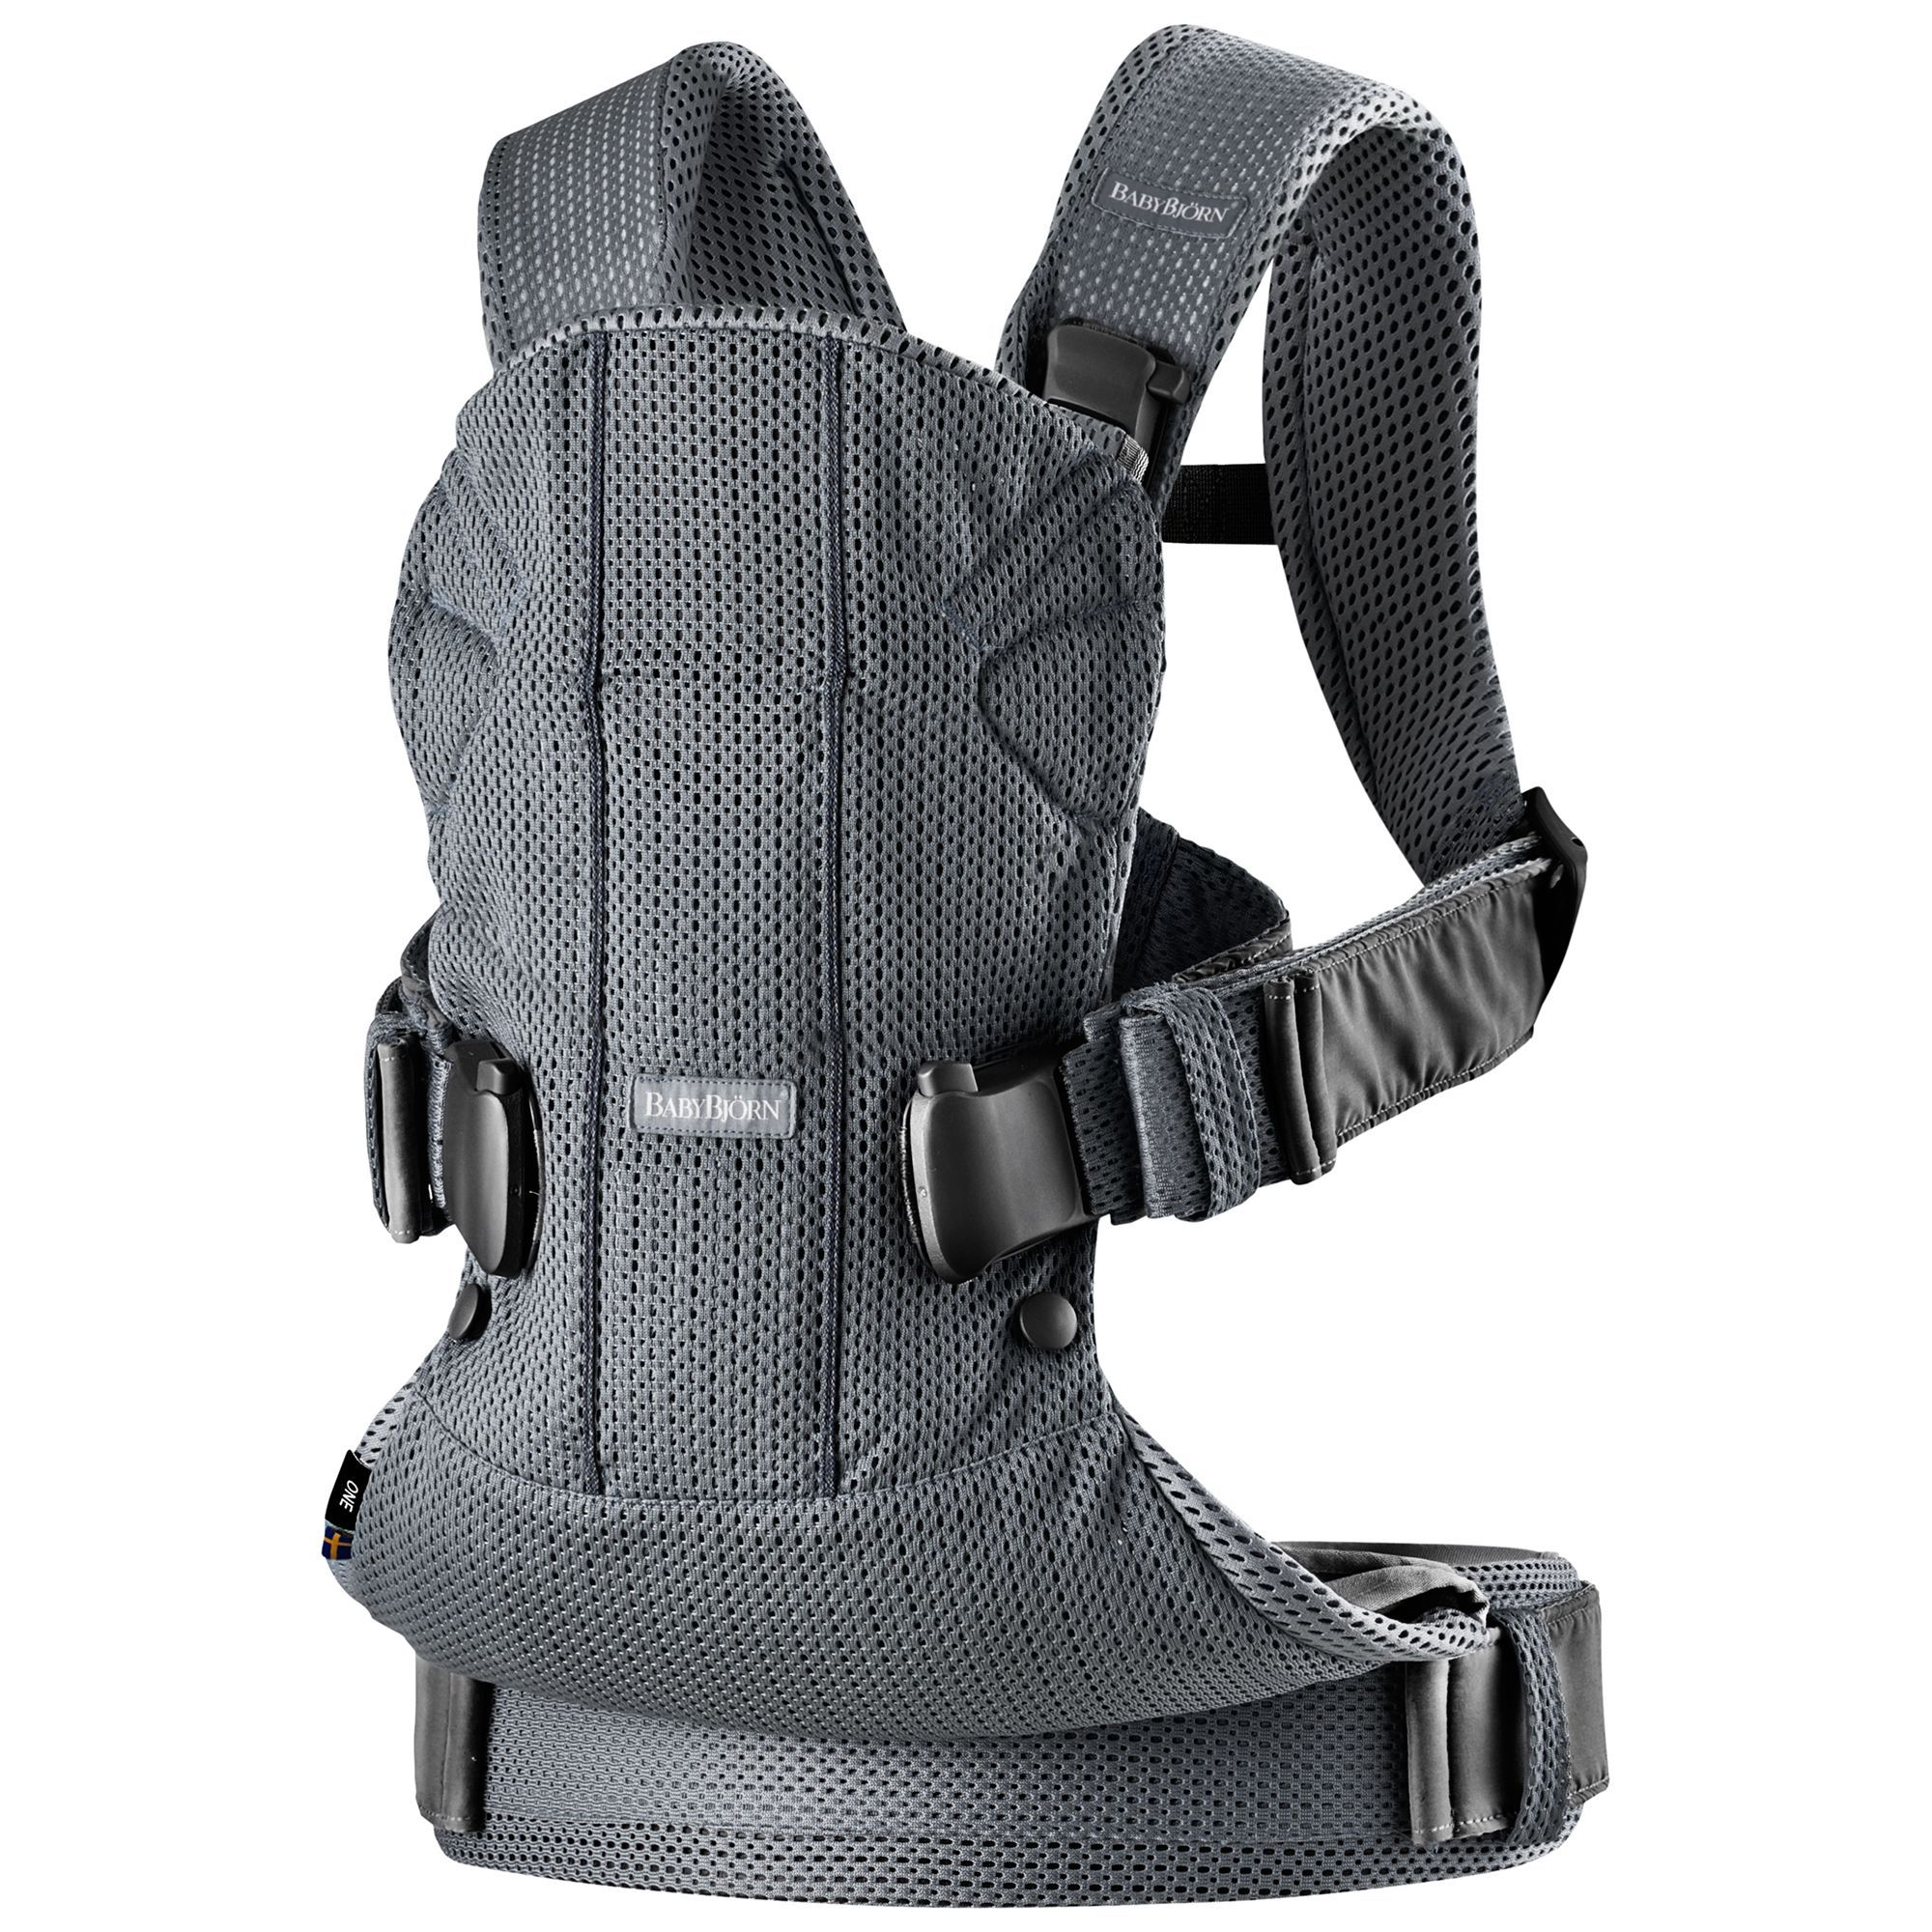 Babybjorn One Air Baby Carrier 2018 Anthracite In 2020 Baby Bjorn Carrier Baby Carrier Baby Bjorn